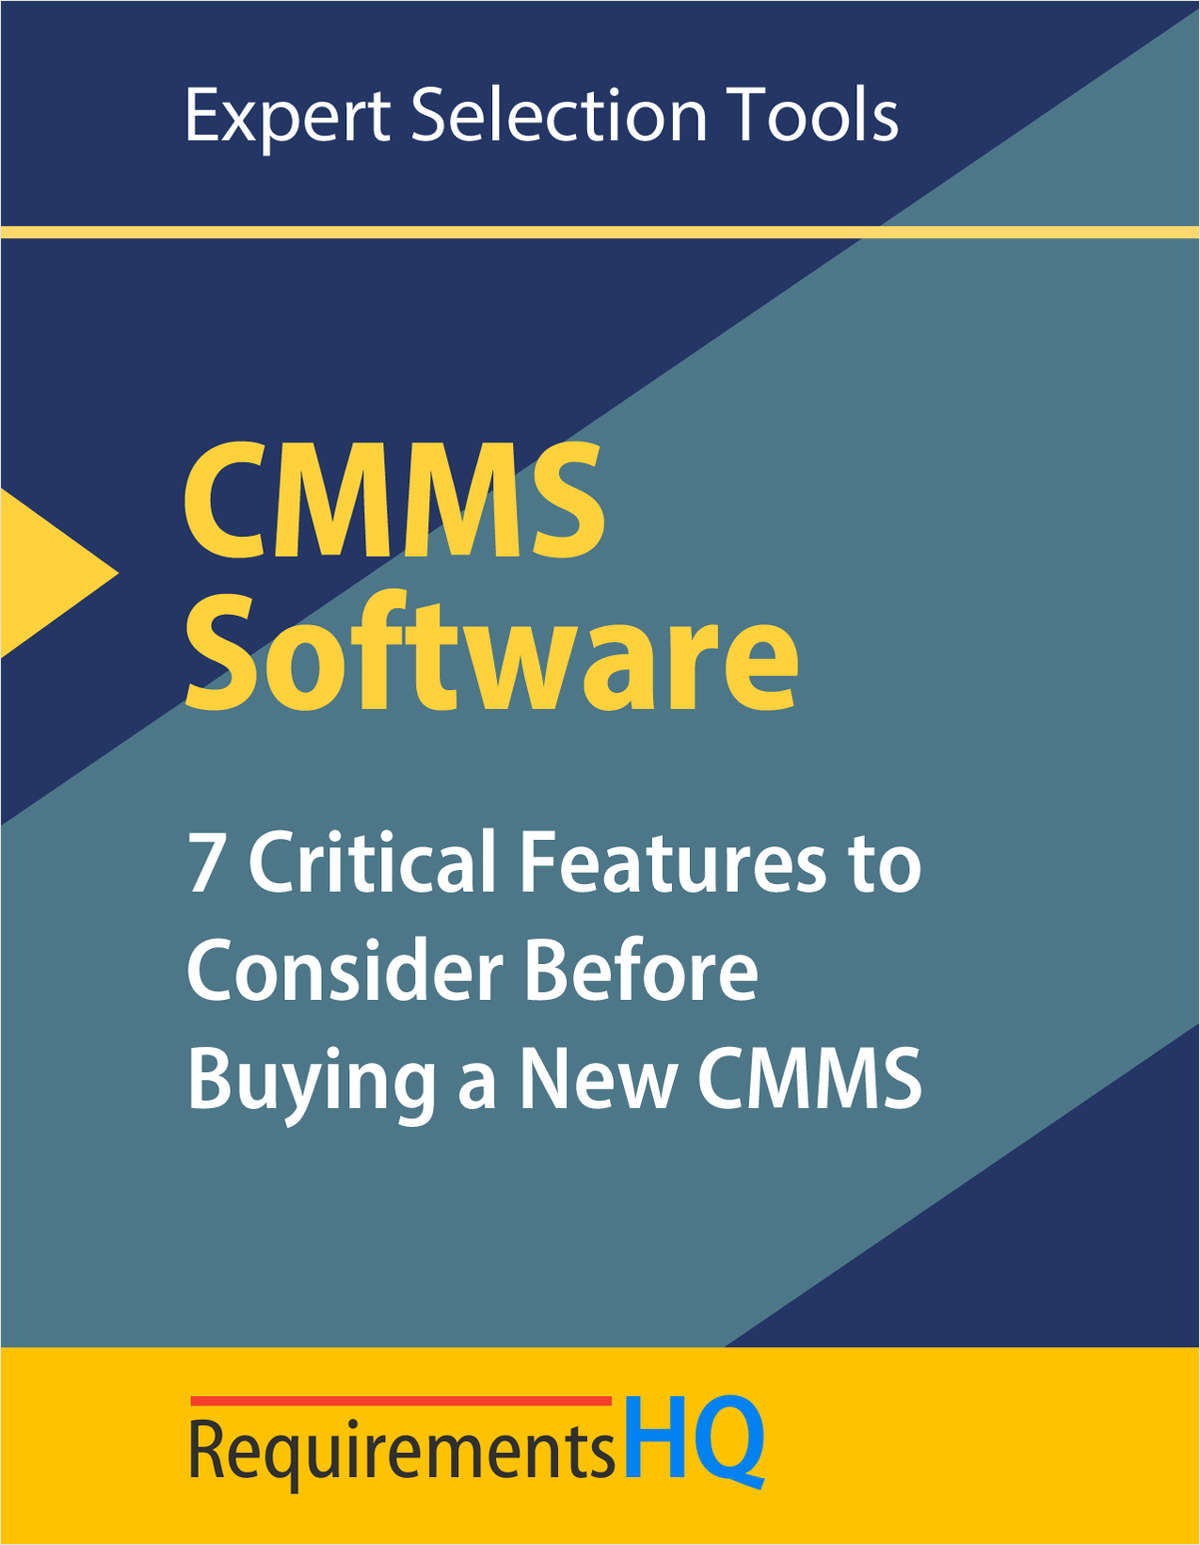 CMMS Software: 7 Critical Features to Consider Before Buying a New CMMS